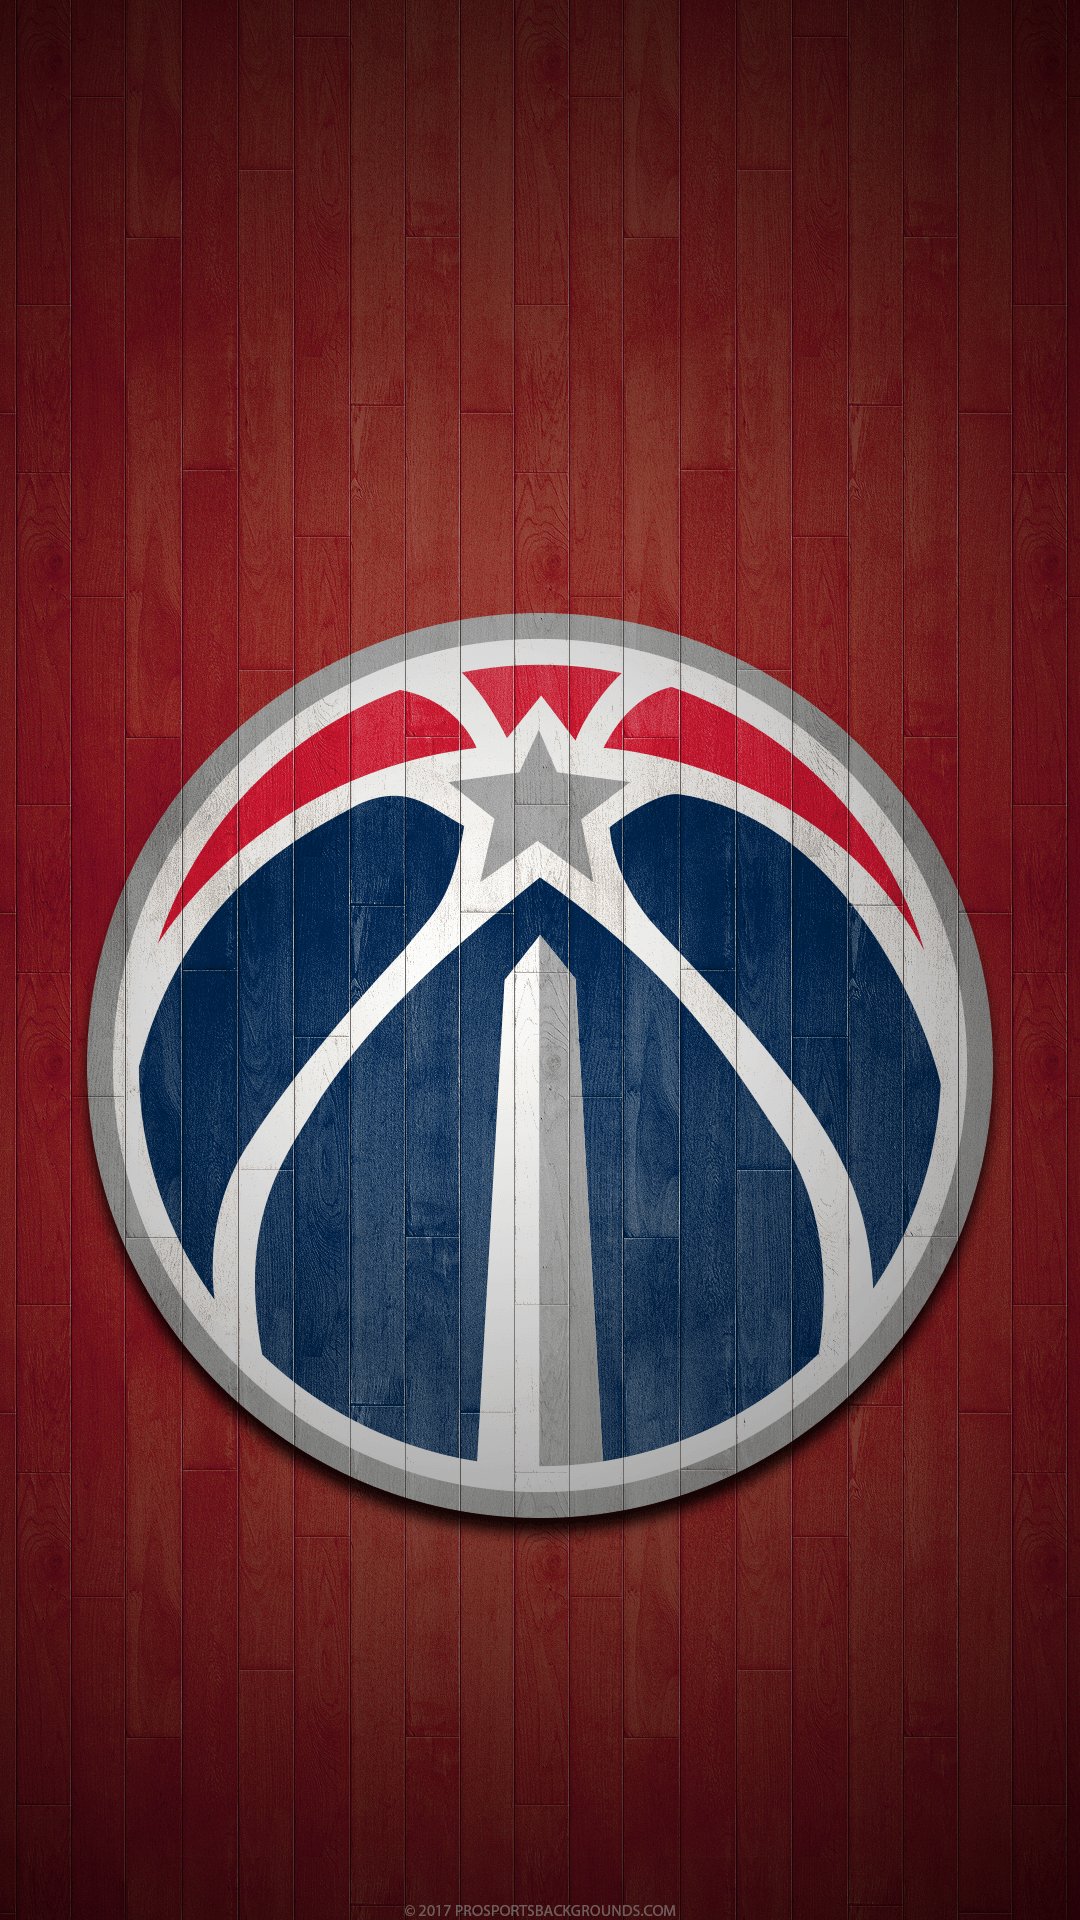 1080x1920 2018 Washington Wizards Wallpapers - PC |iPhone| Android